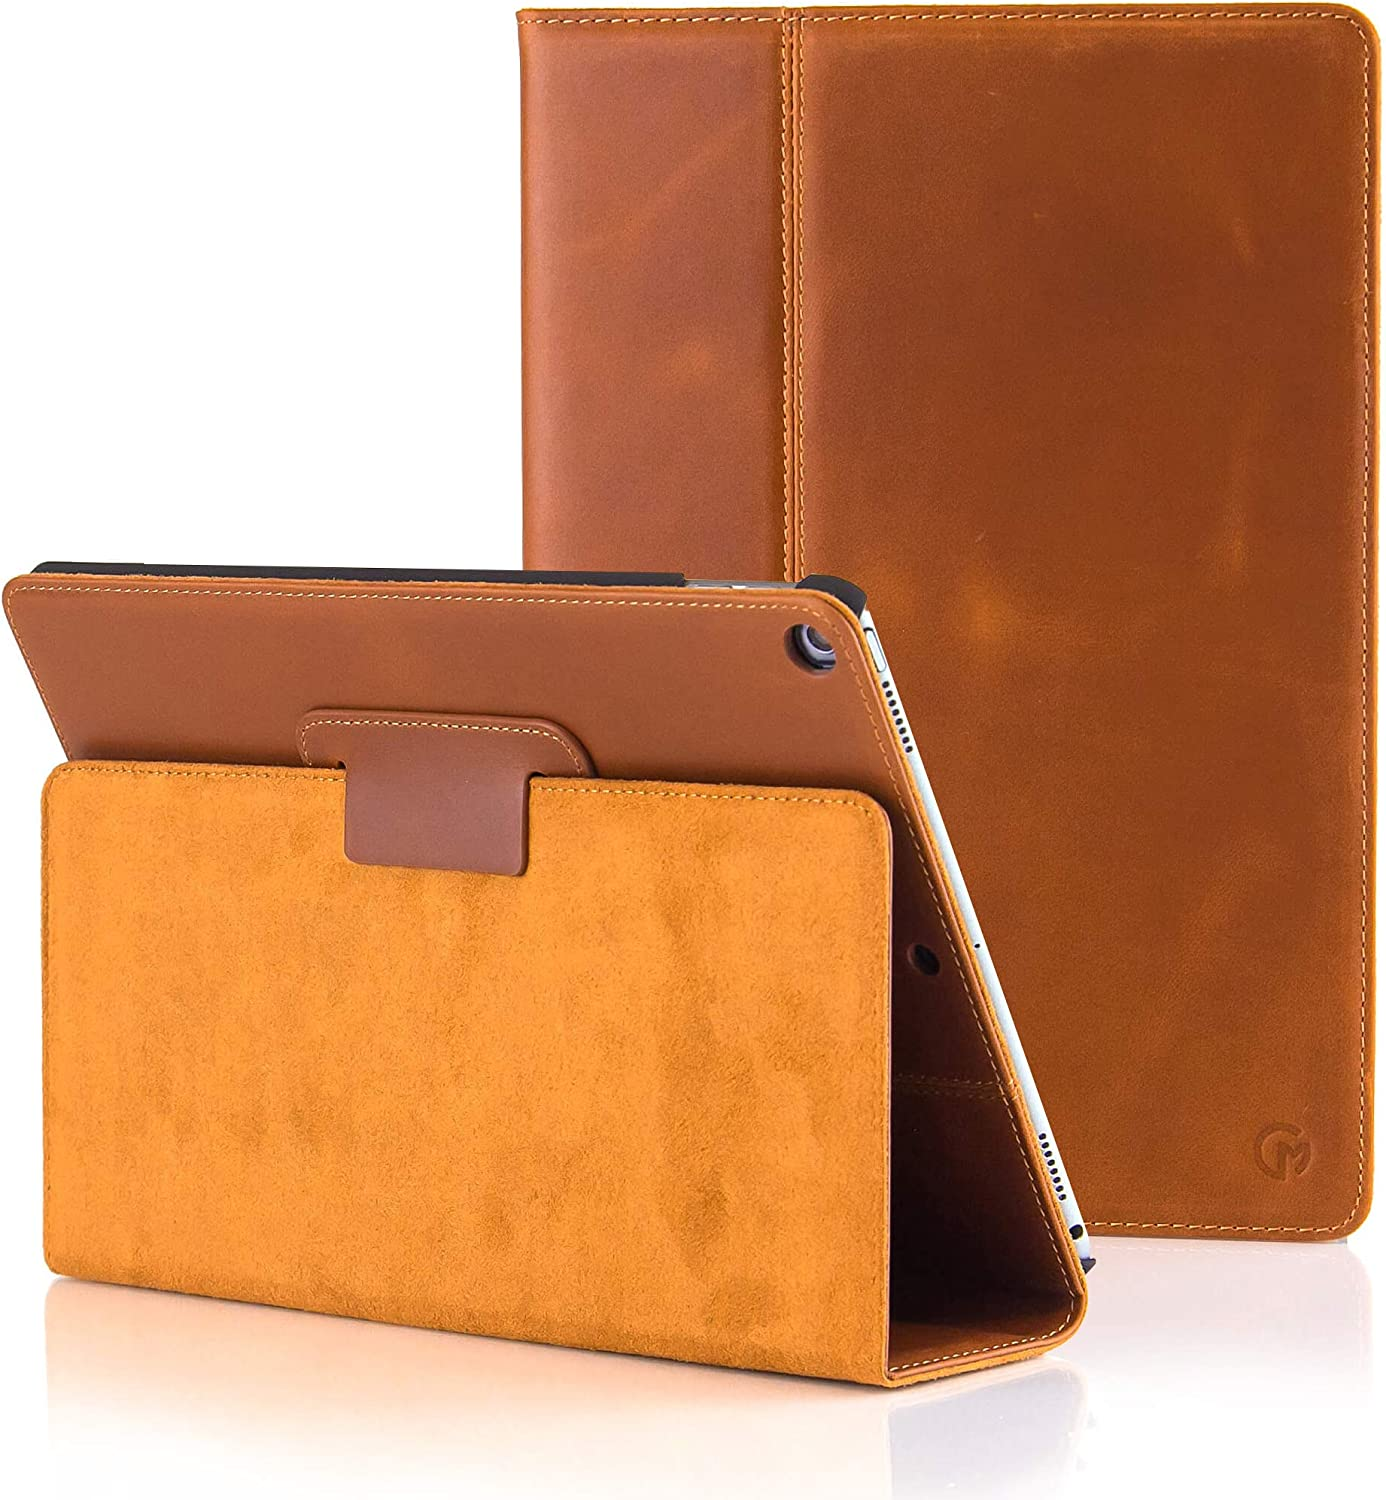 CASEMADE iPad 9.7 inch Real Leather Case (5th/6th Generation 2017/2018) - Premium Luxury Italian Slim Cover/Smart Folio with Dual Stand and Auto Sleep/Wake (Tan)